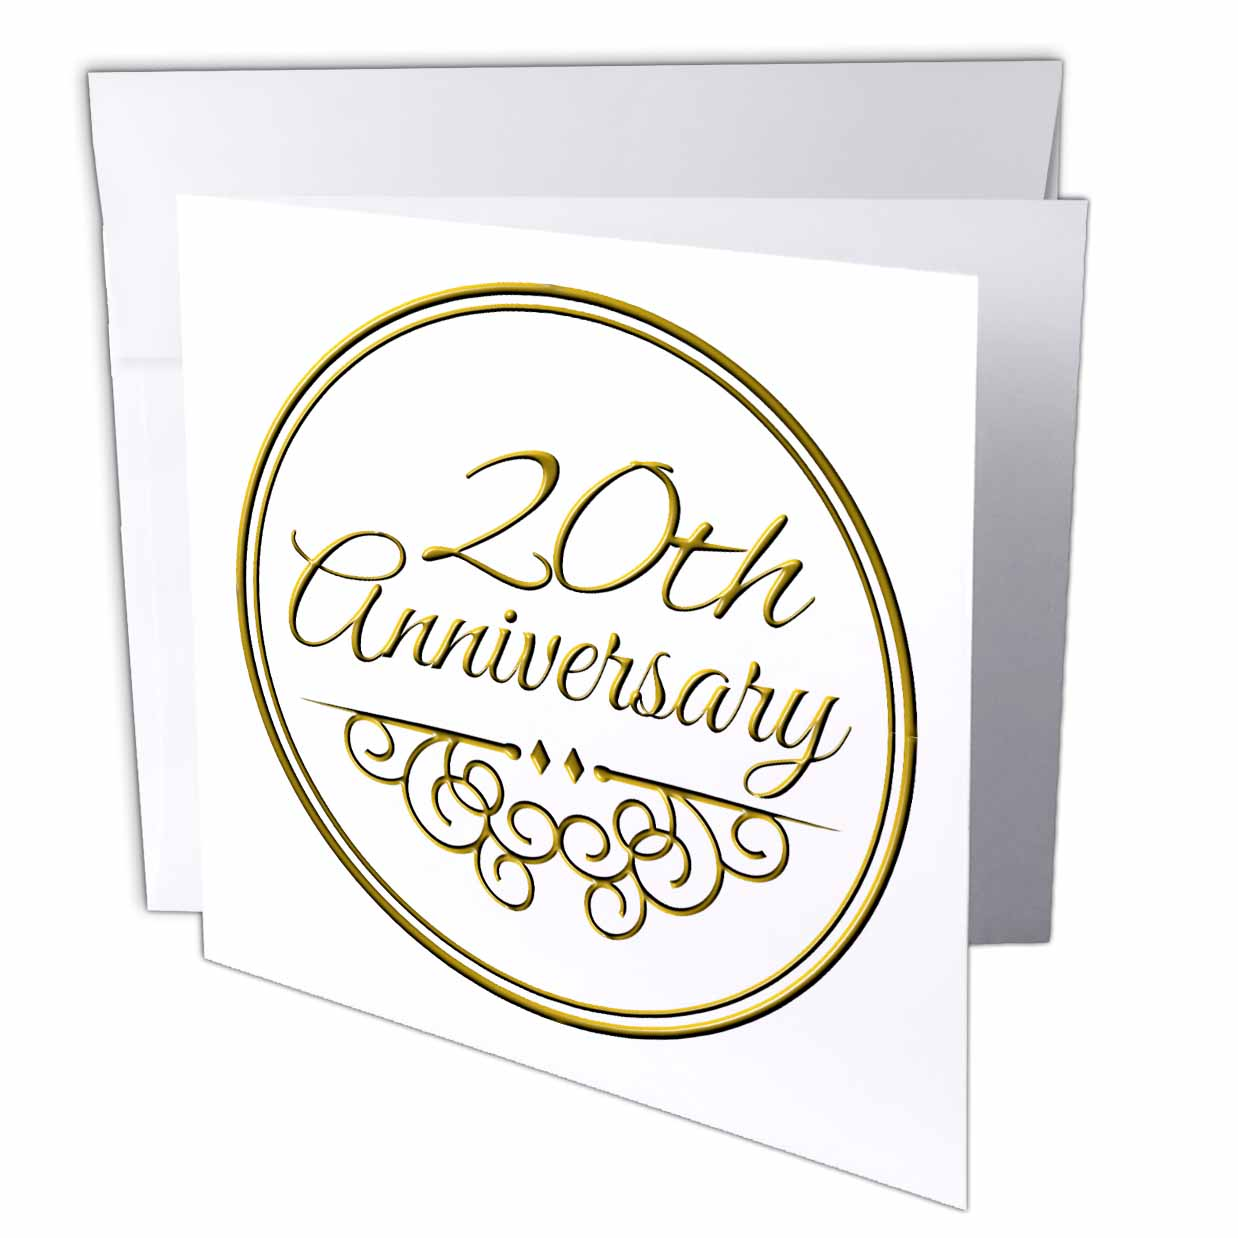 3dRose 20th Anniversary gift - gold text for celebrating wedding anniversaries - 20 years married together Greeting Cards 6 x 6 inches ...  sc 1 st  Walmart & 3dRose 20th Anniversary gift - gold text for celebrating wedding ...